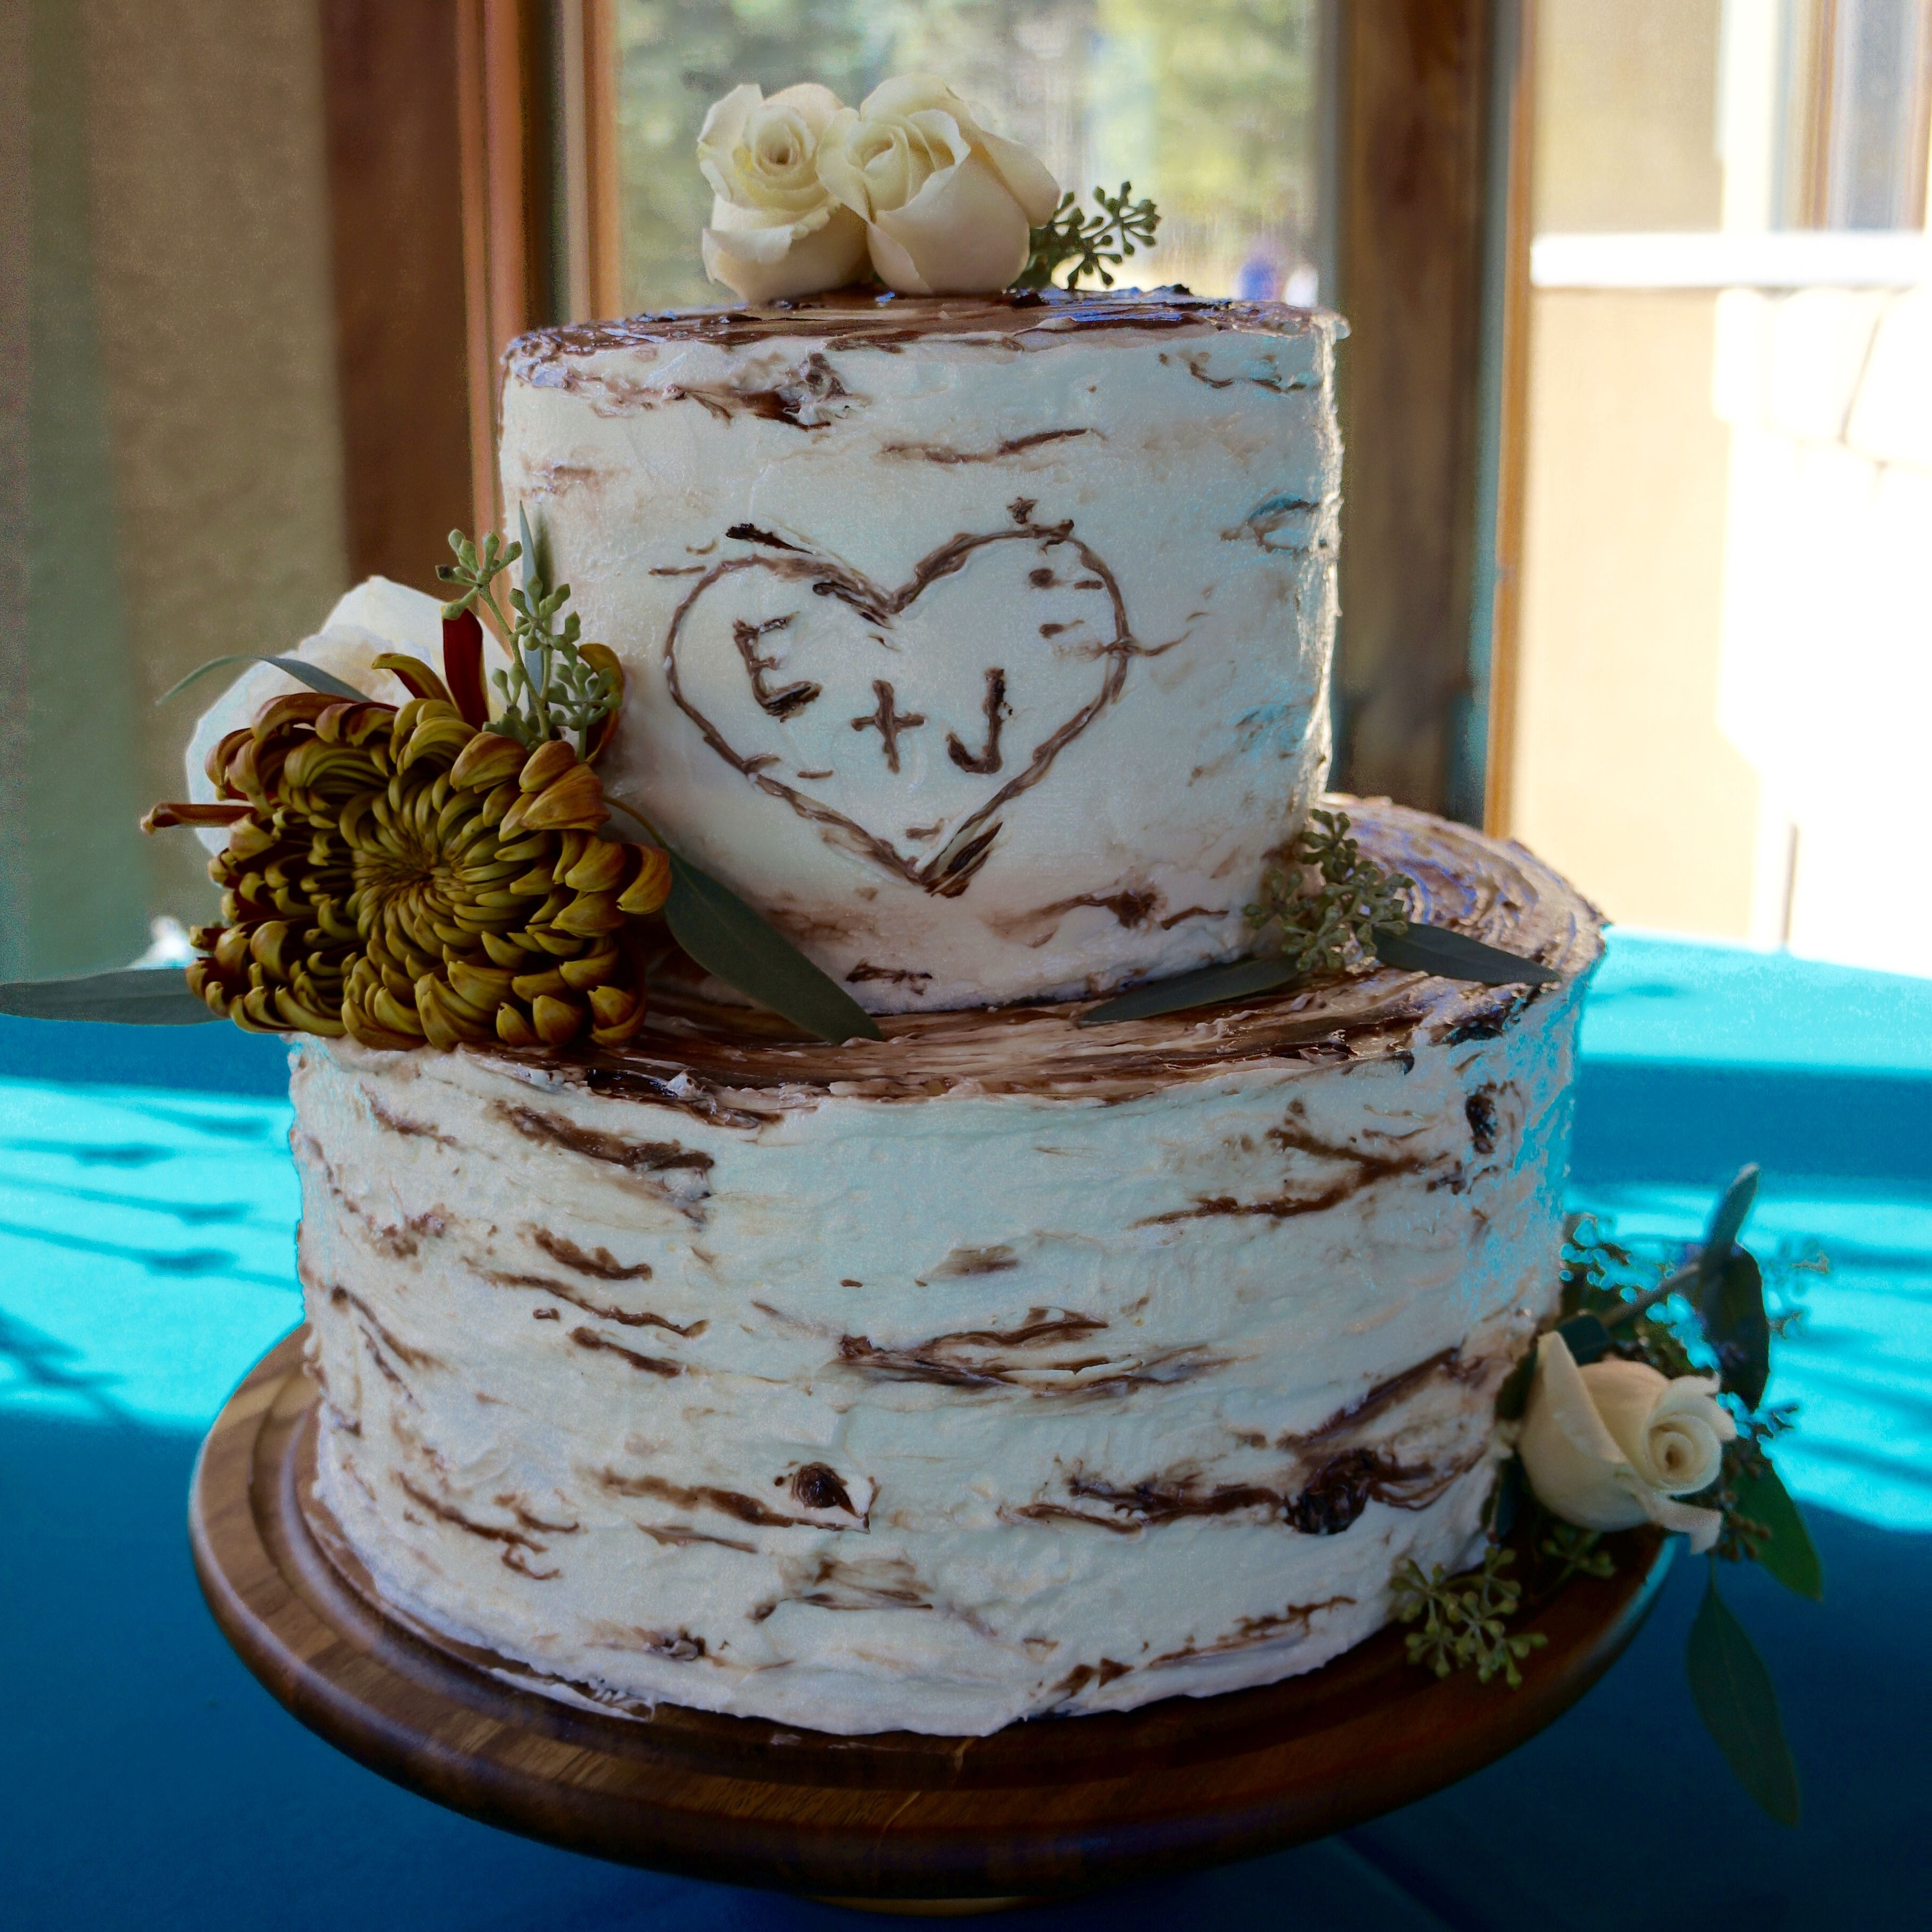 birch tree wedding cake ideas top wedding cake trends for 2017 rustic birch tree cake 11768